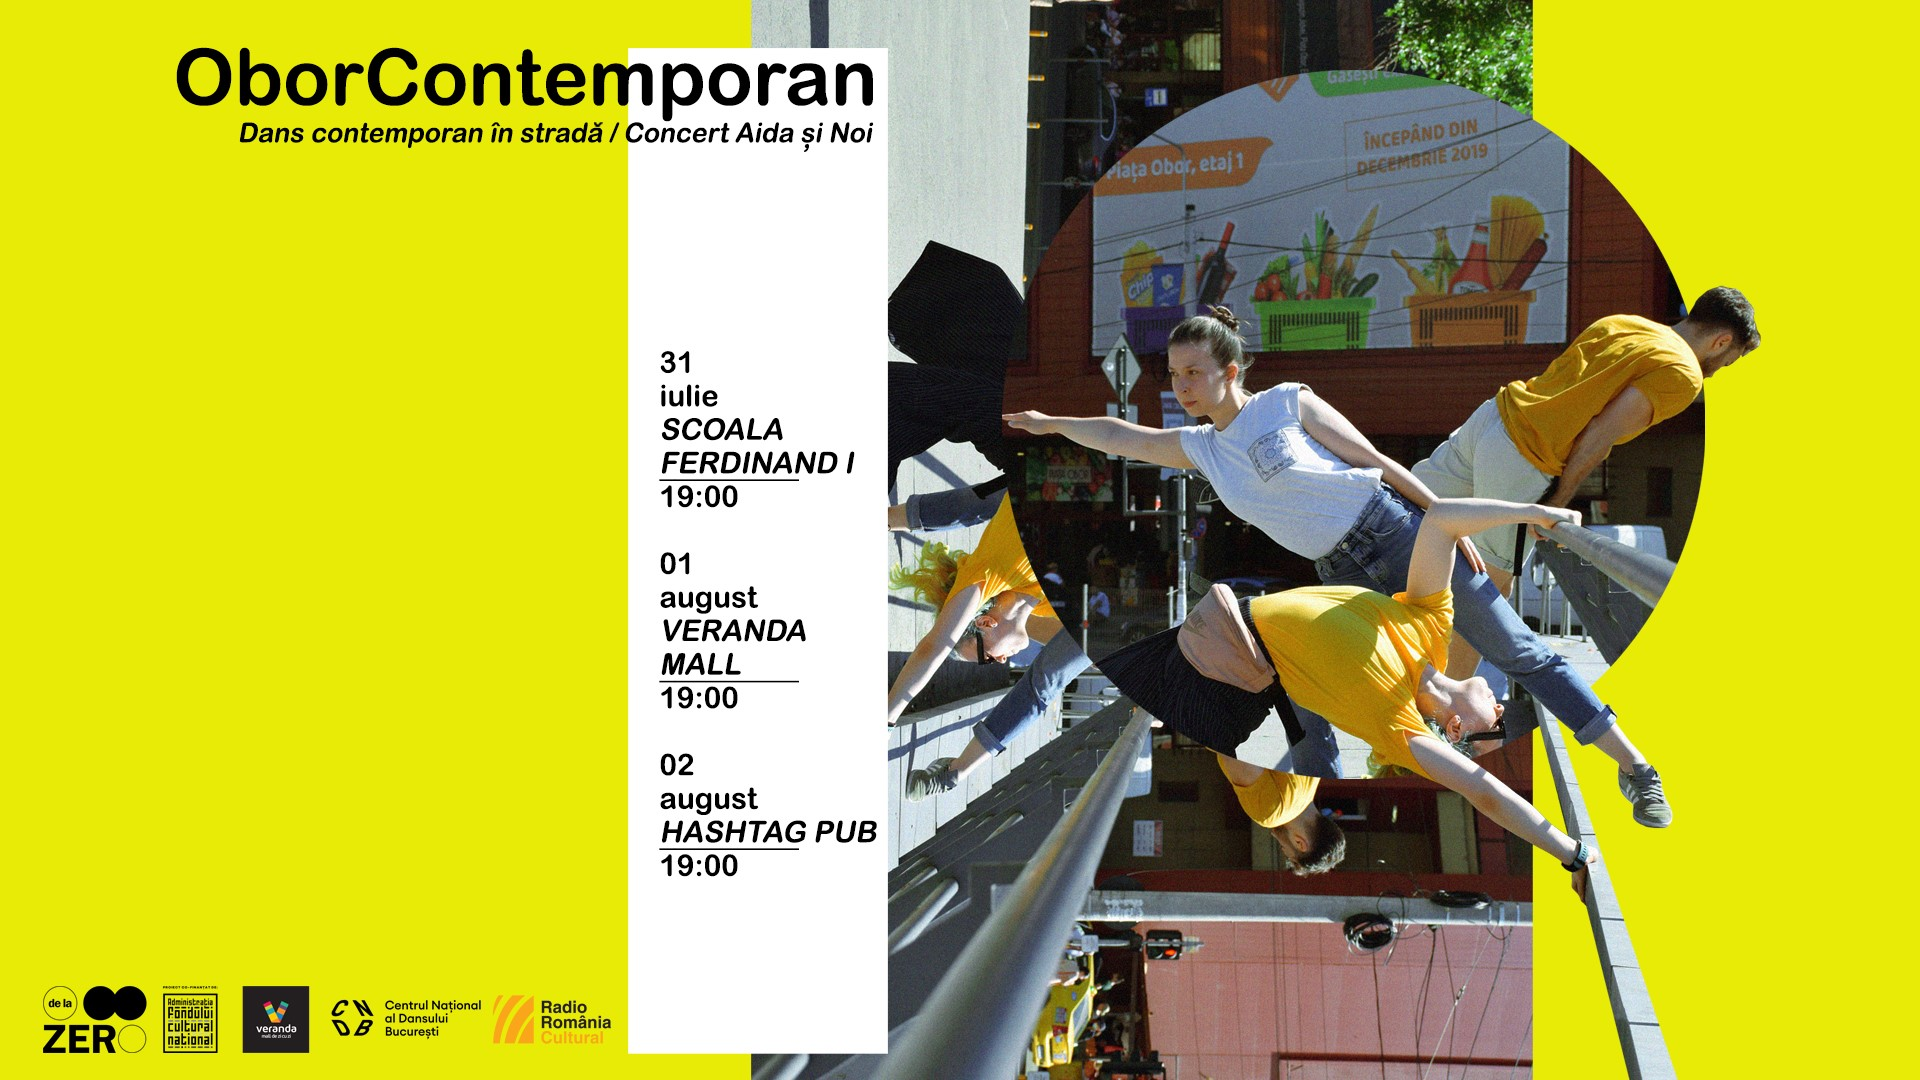 evenimente weekend 31 iulie-2 aug obor contemporan